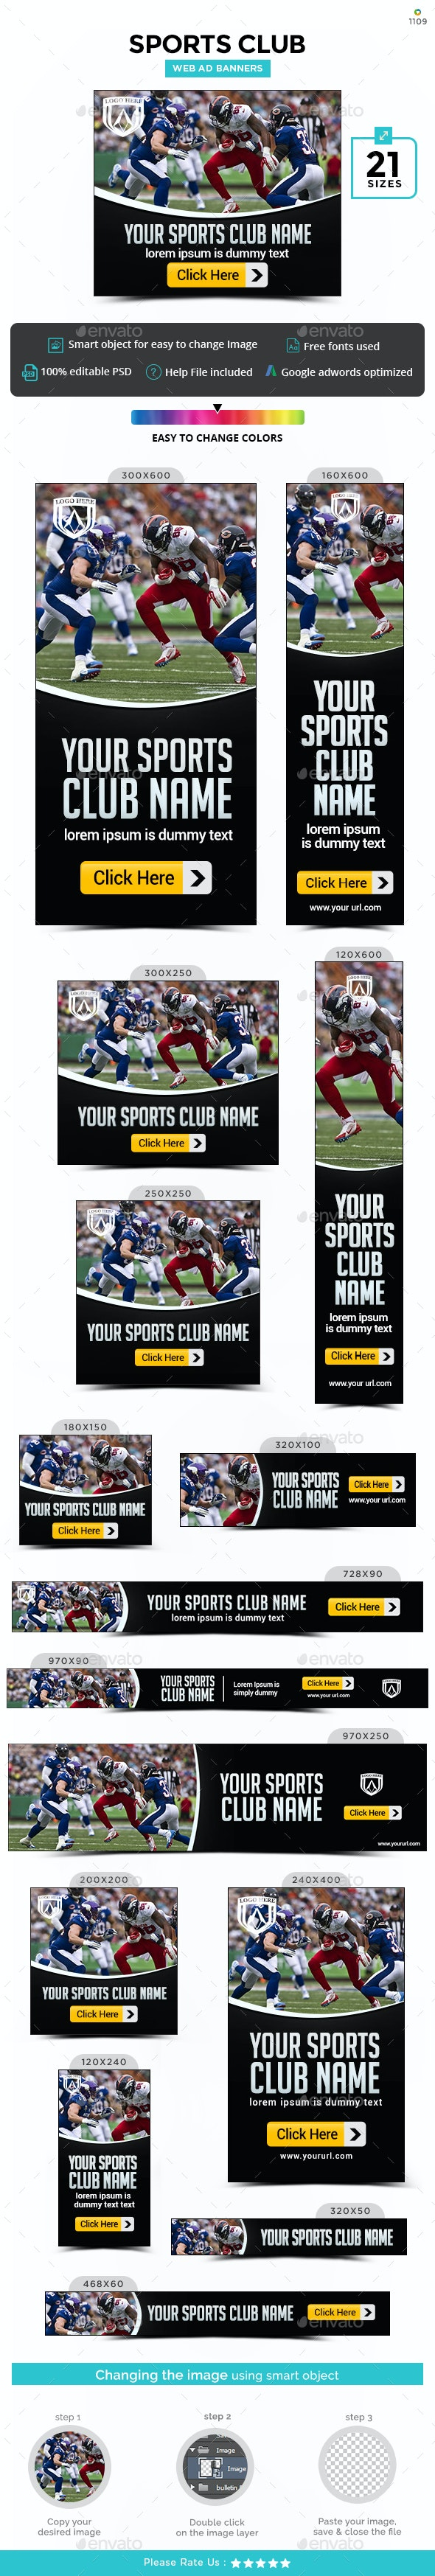 Online Sports Store Web Banners - Banners & Ads Web Elements